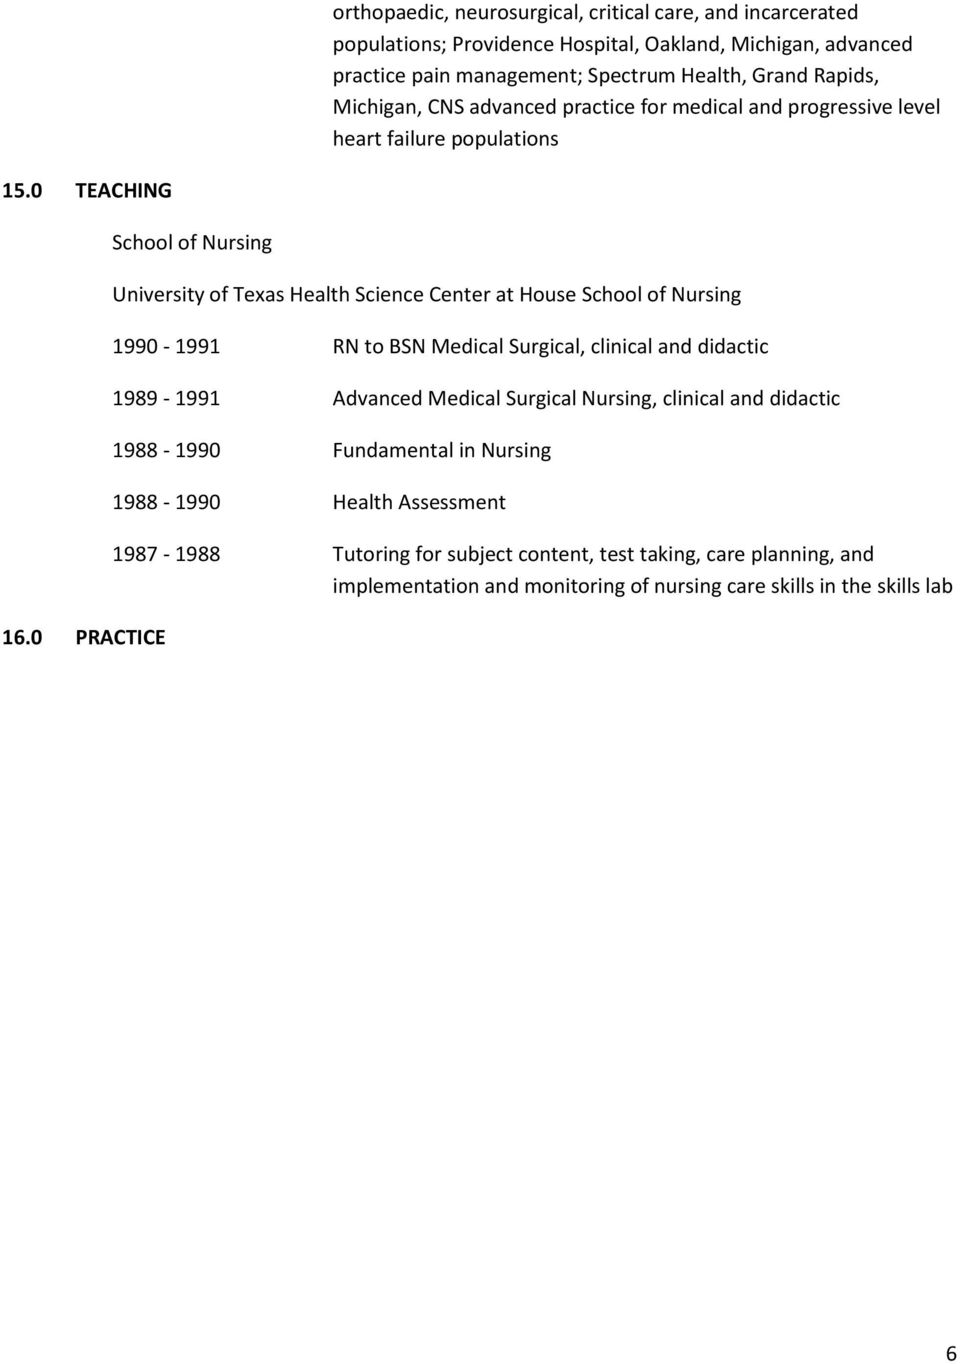 0 PRACTICE School of Nursing University of Texas Health Science Center at House School of Nursing 1990-1991 RN to BSN Medical Surgical, clinical and didactic 1989-1991 Advanced